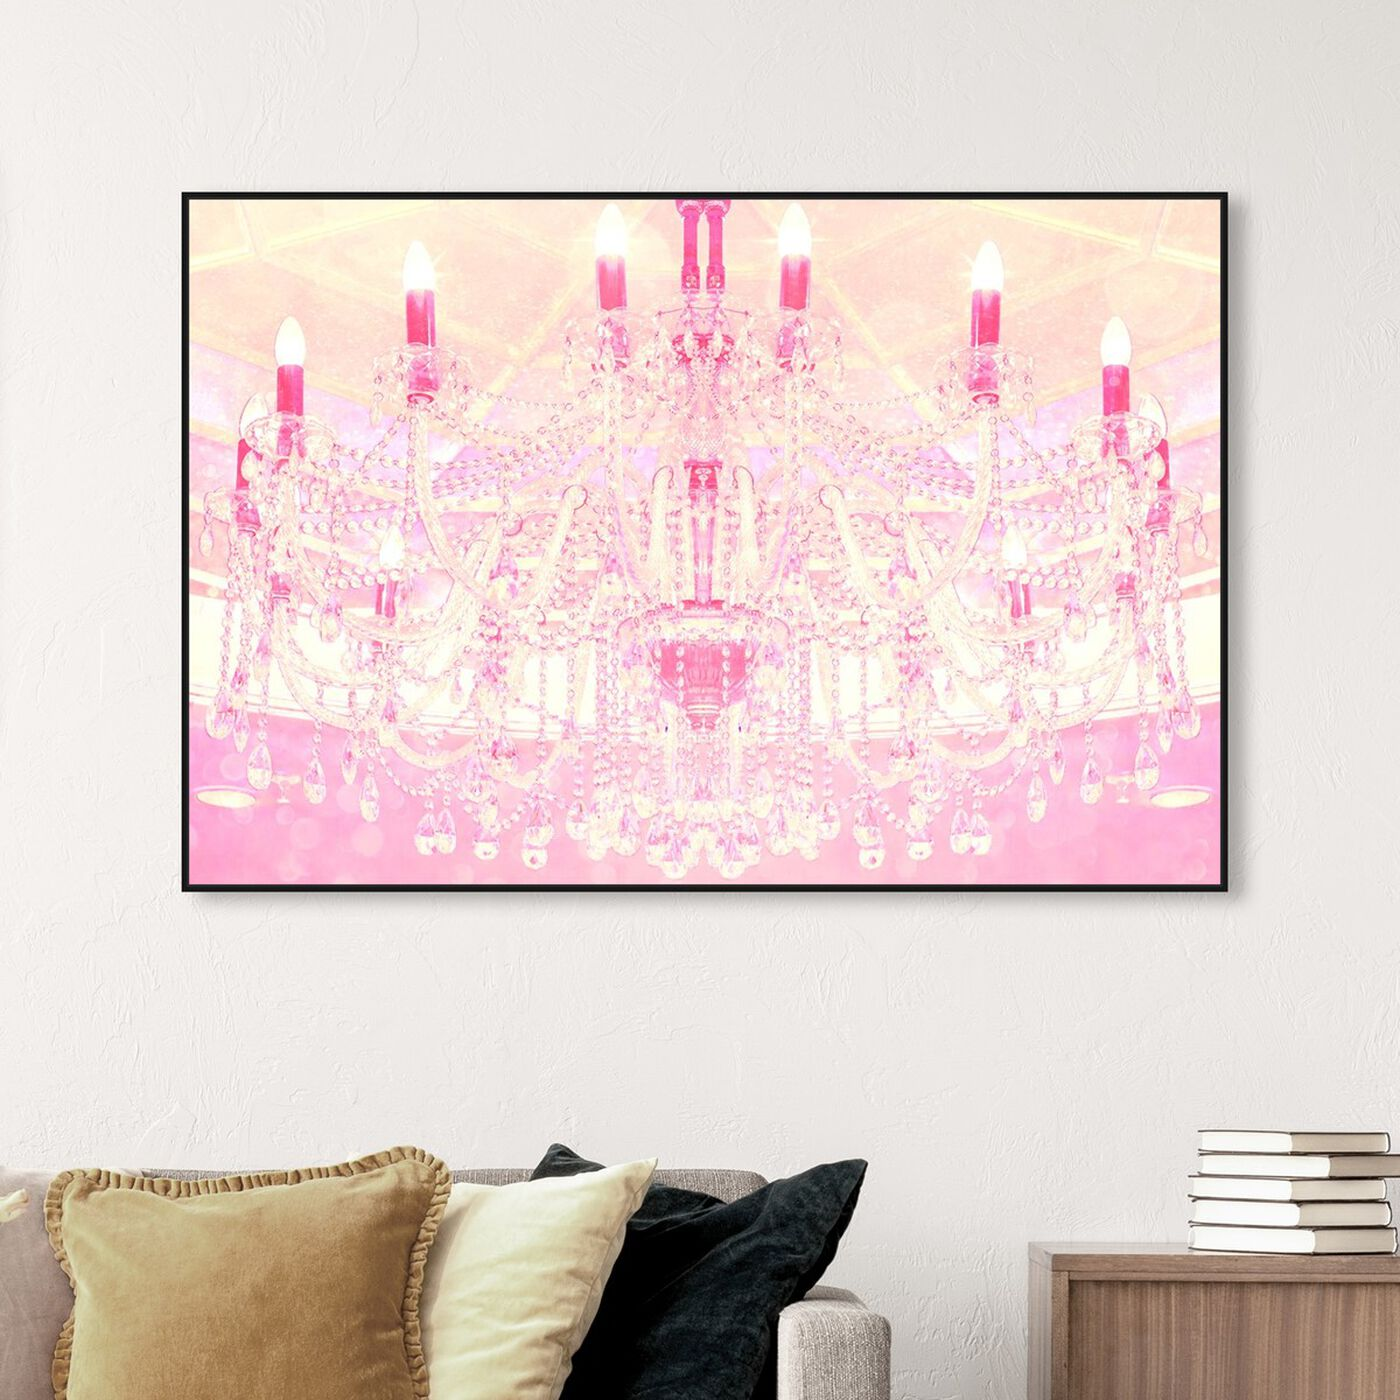 Hanging view of Strawberry Vanilla Lights  featuring fashion and glam and chandeliers art.